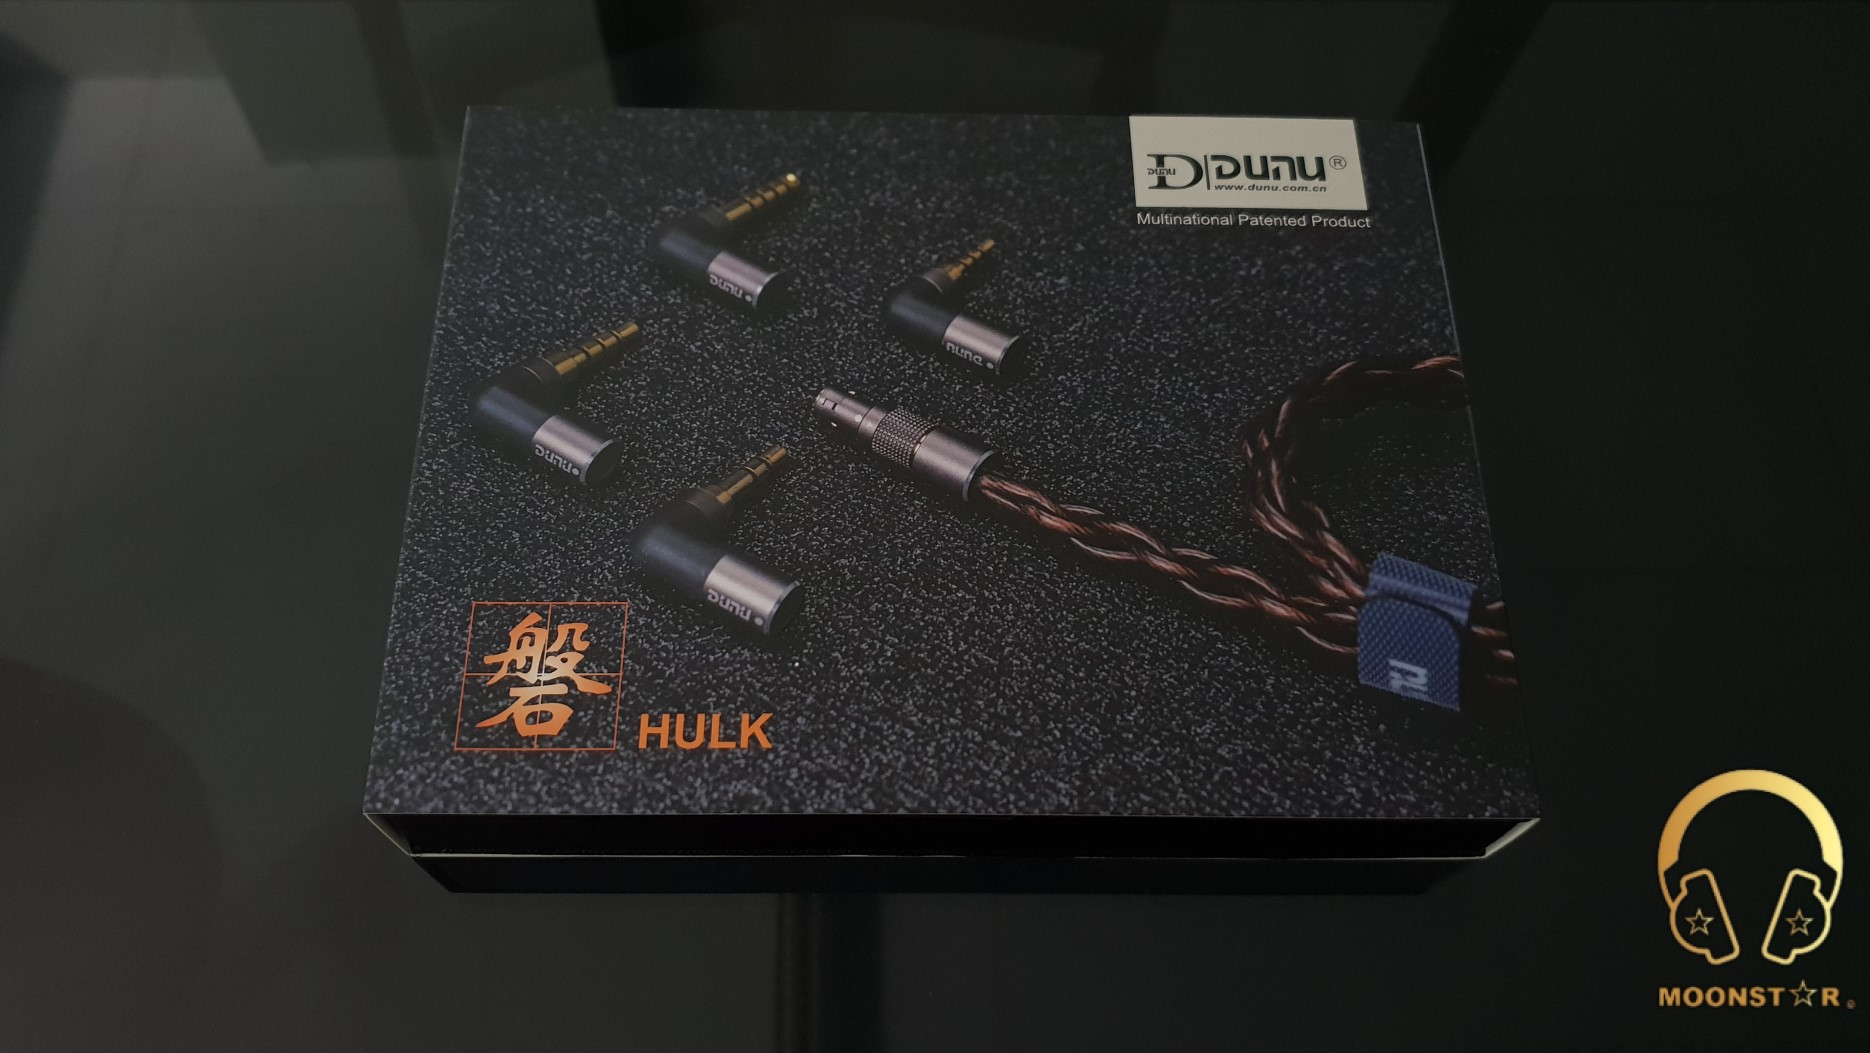 DUNU HULK Cable Review